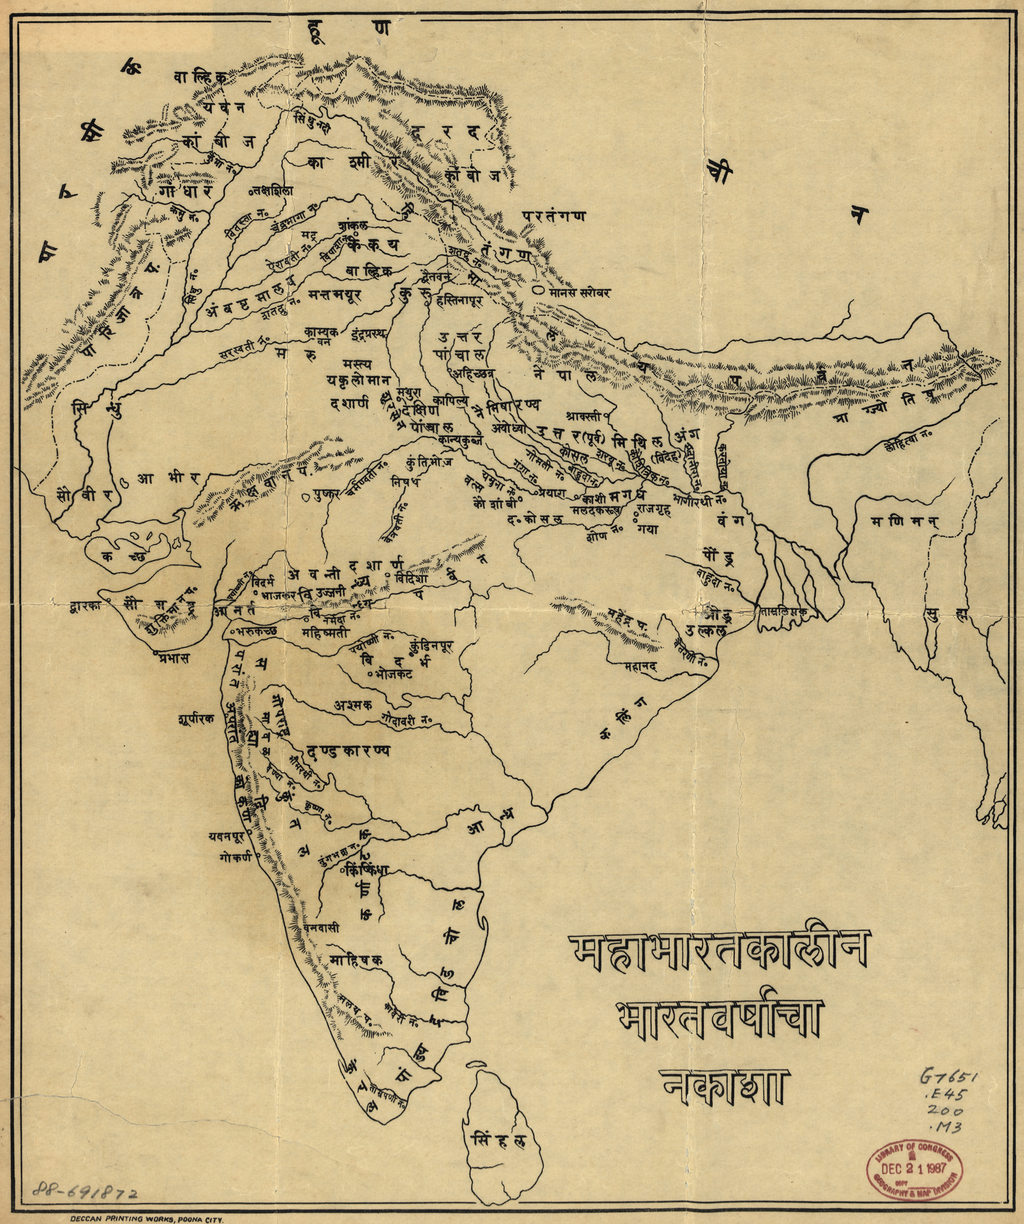 Vintage infodesign 37 india emperor and history map of india in the age of the mahabharata c1900 gumiabroncs Images